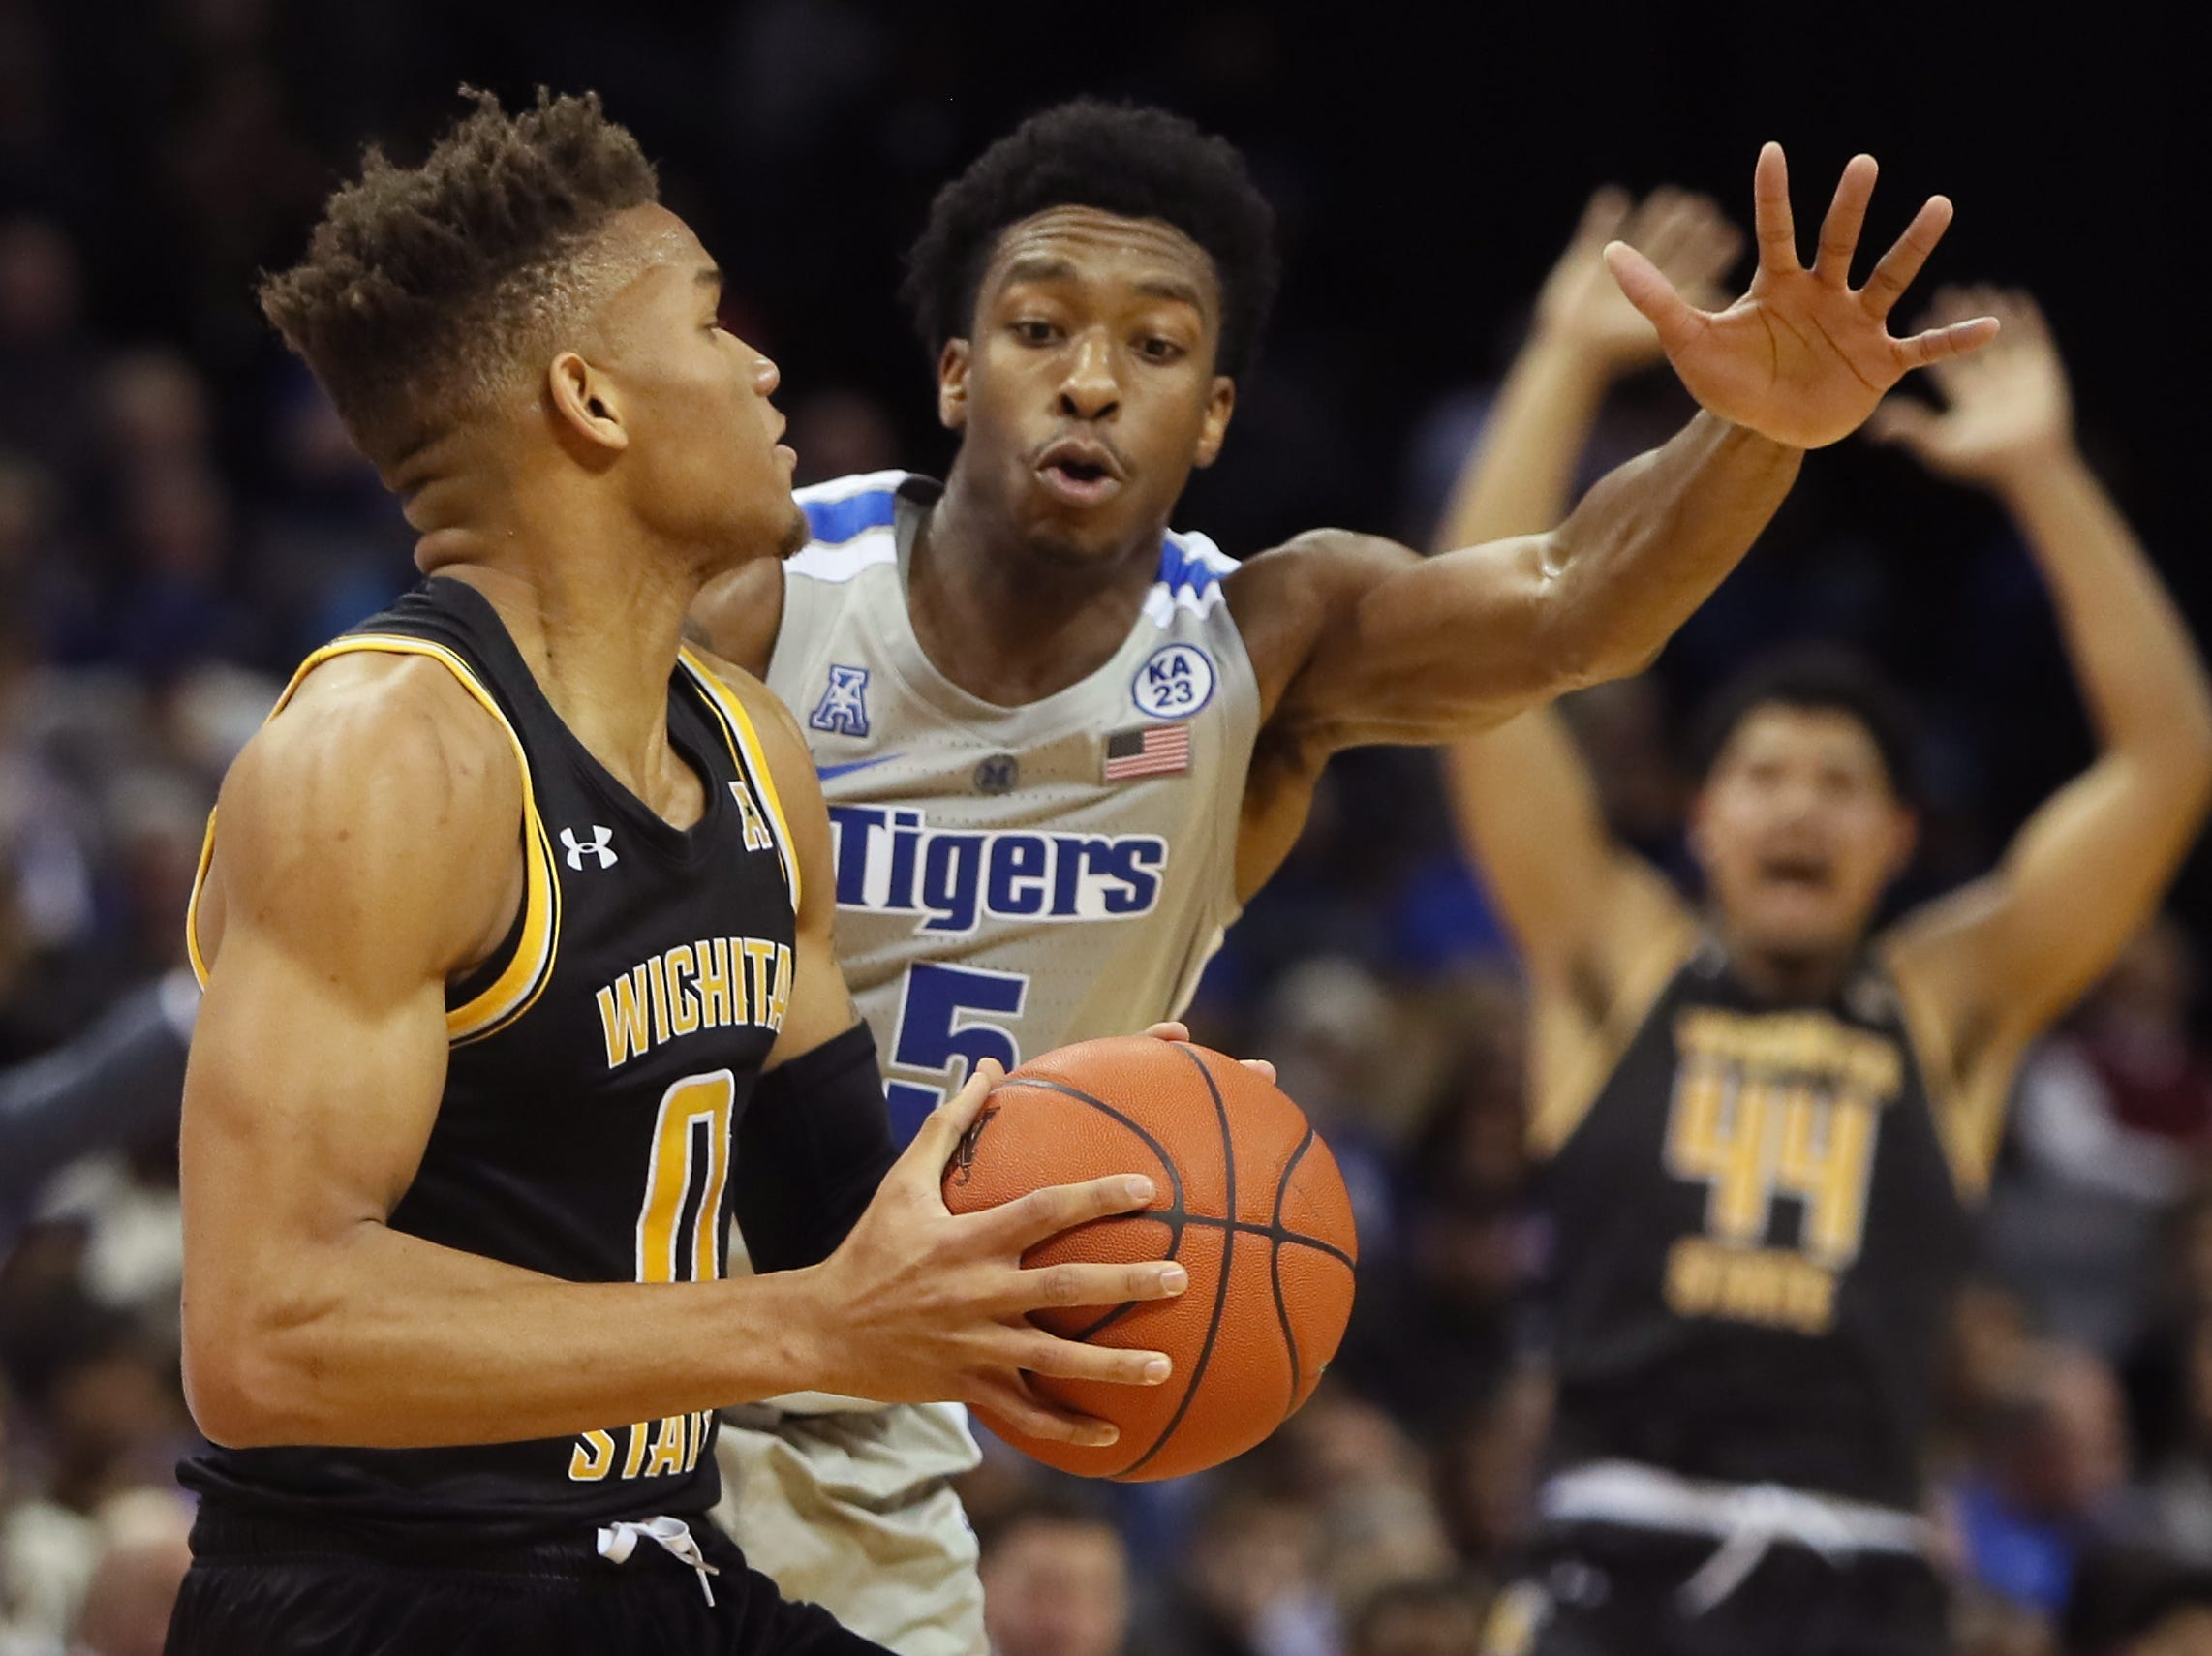 Memphis Tigers guard Kareem Brewton Jr. defends Wichita State Shockers guard Dexter Dennis during their game at the FedExForum on Thursday, Jan. 3, 2019.